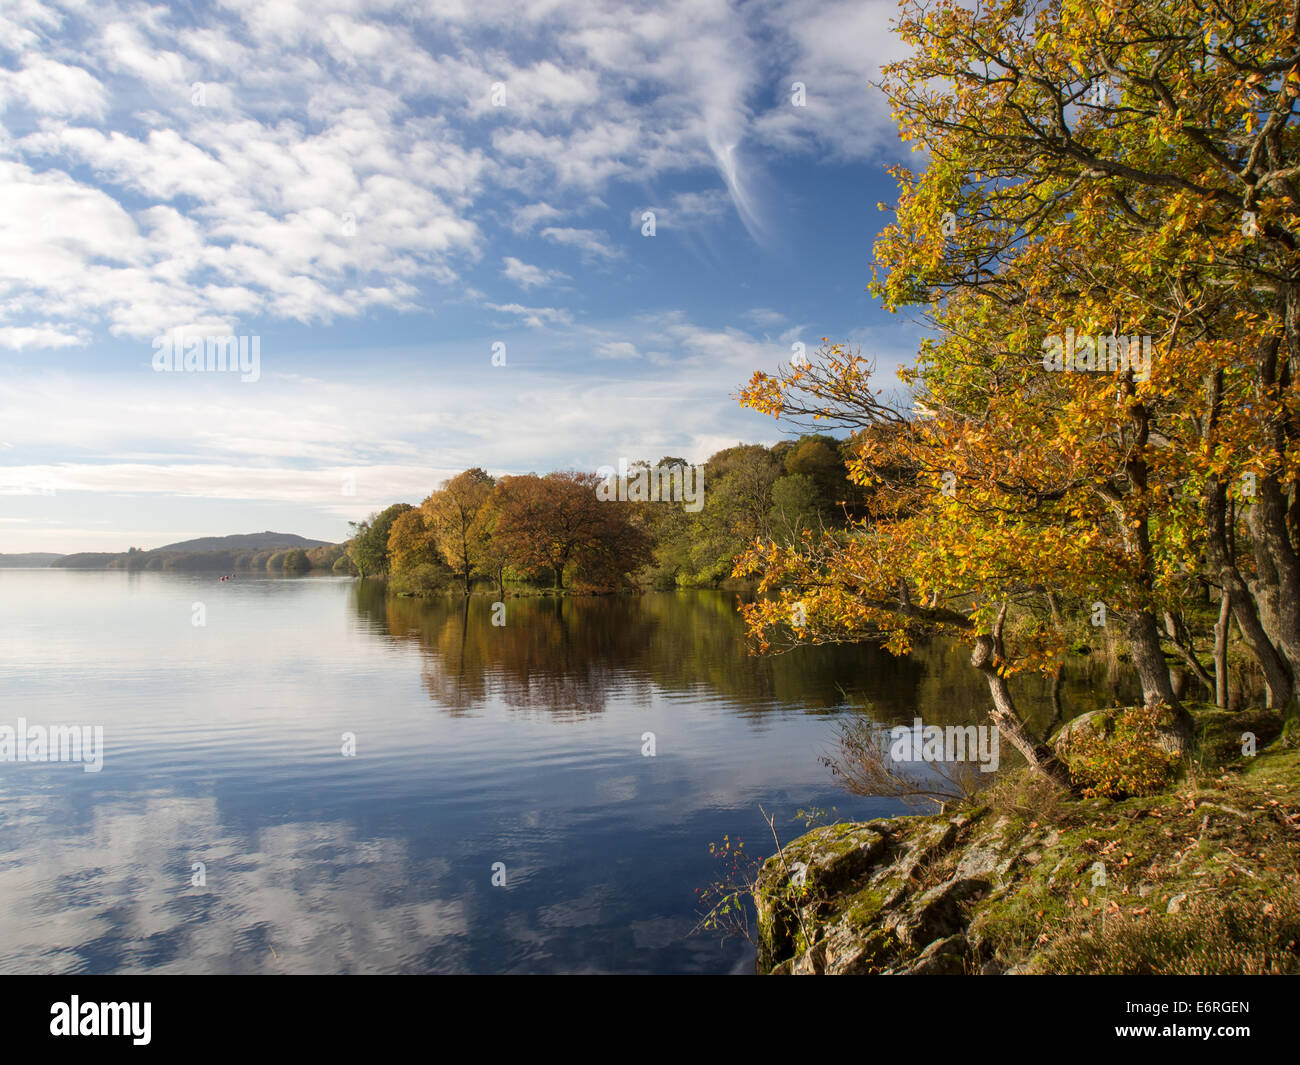 Quiet water of the Lake Windermere and autumn colours along the lake shore, in the Lake District, England. - Stock Image